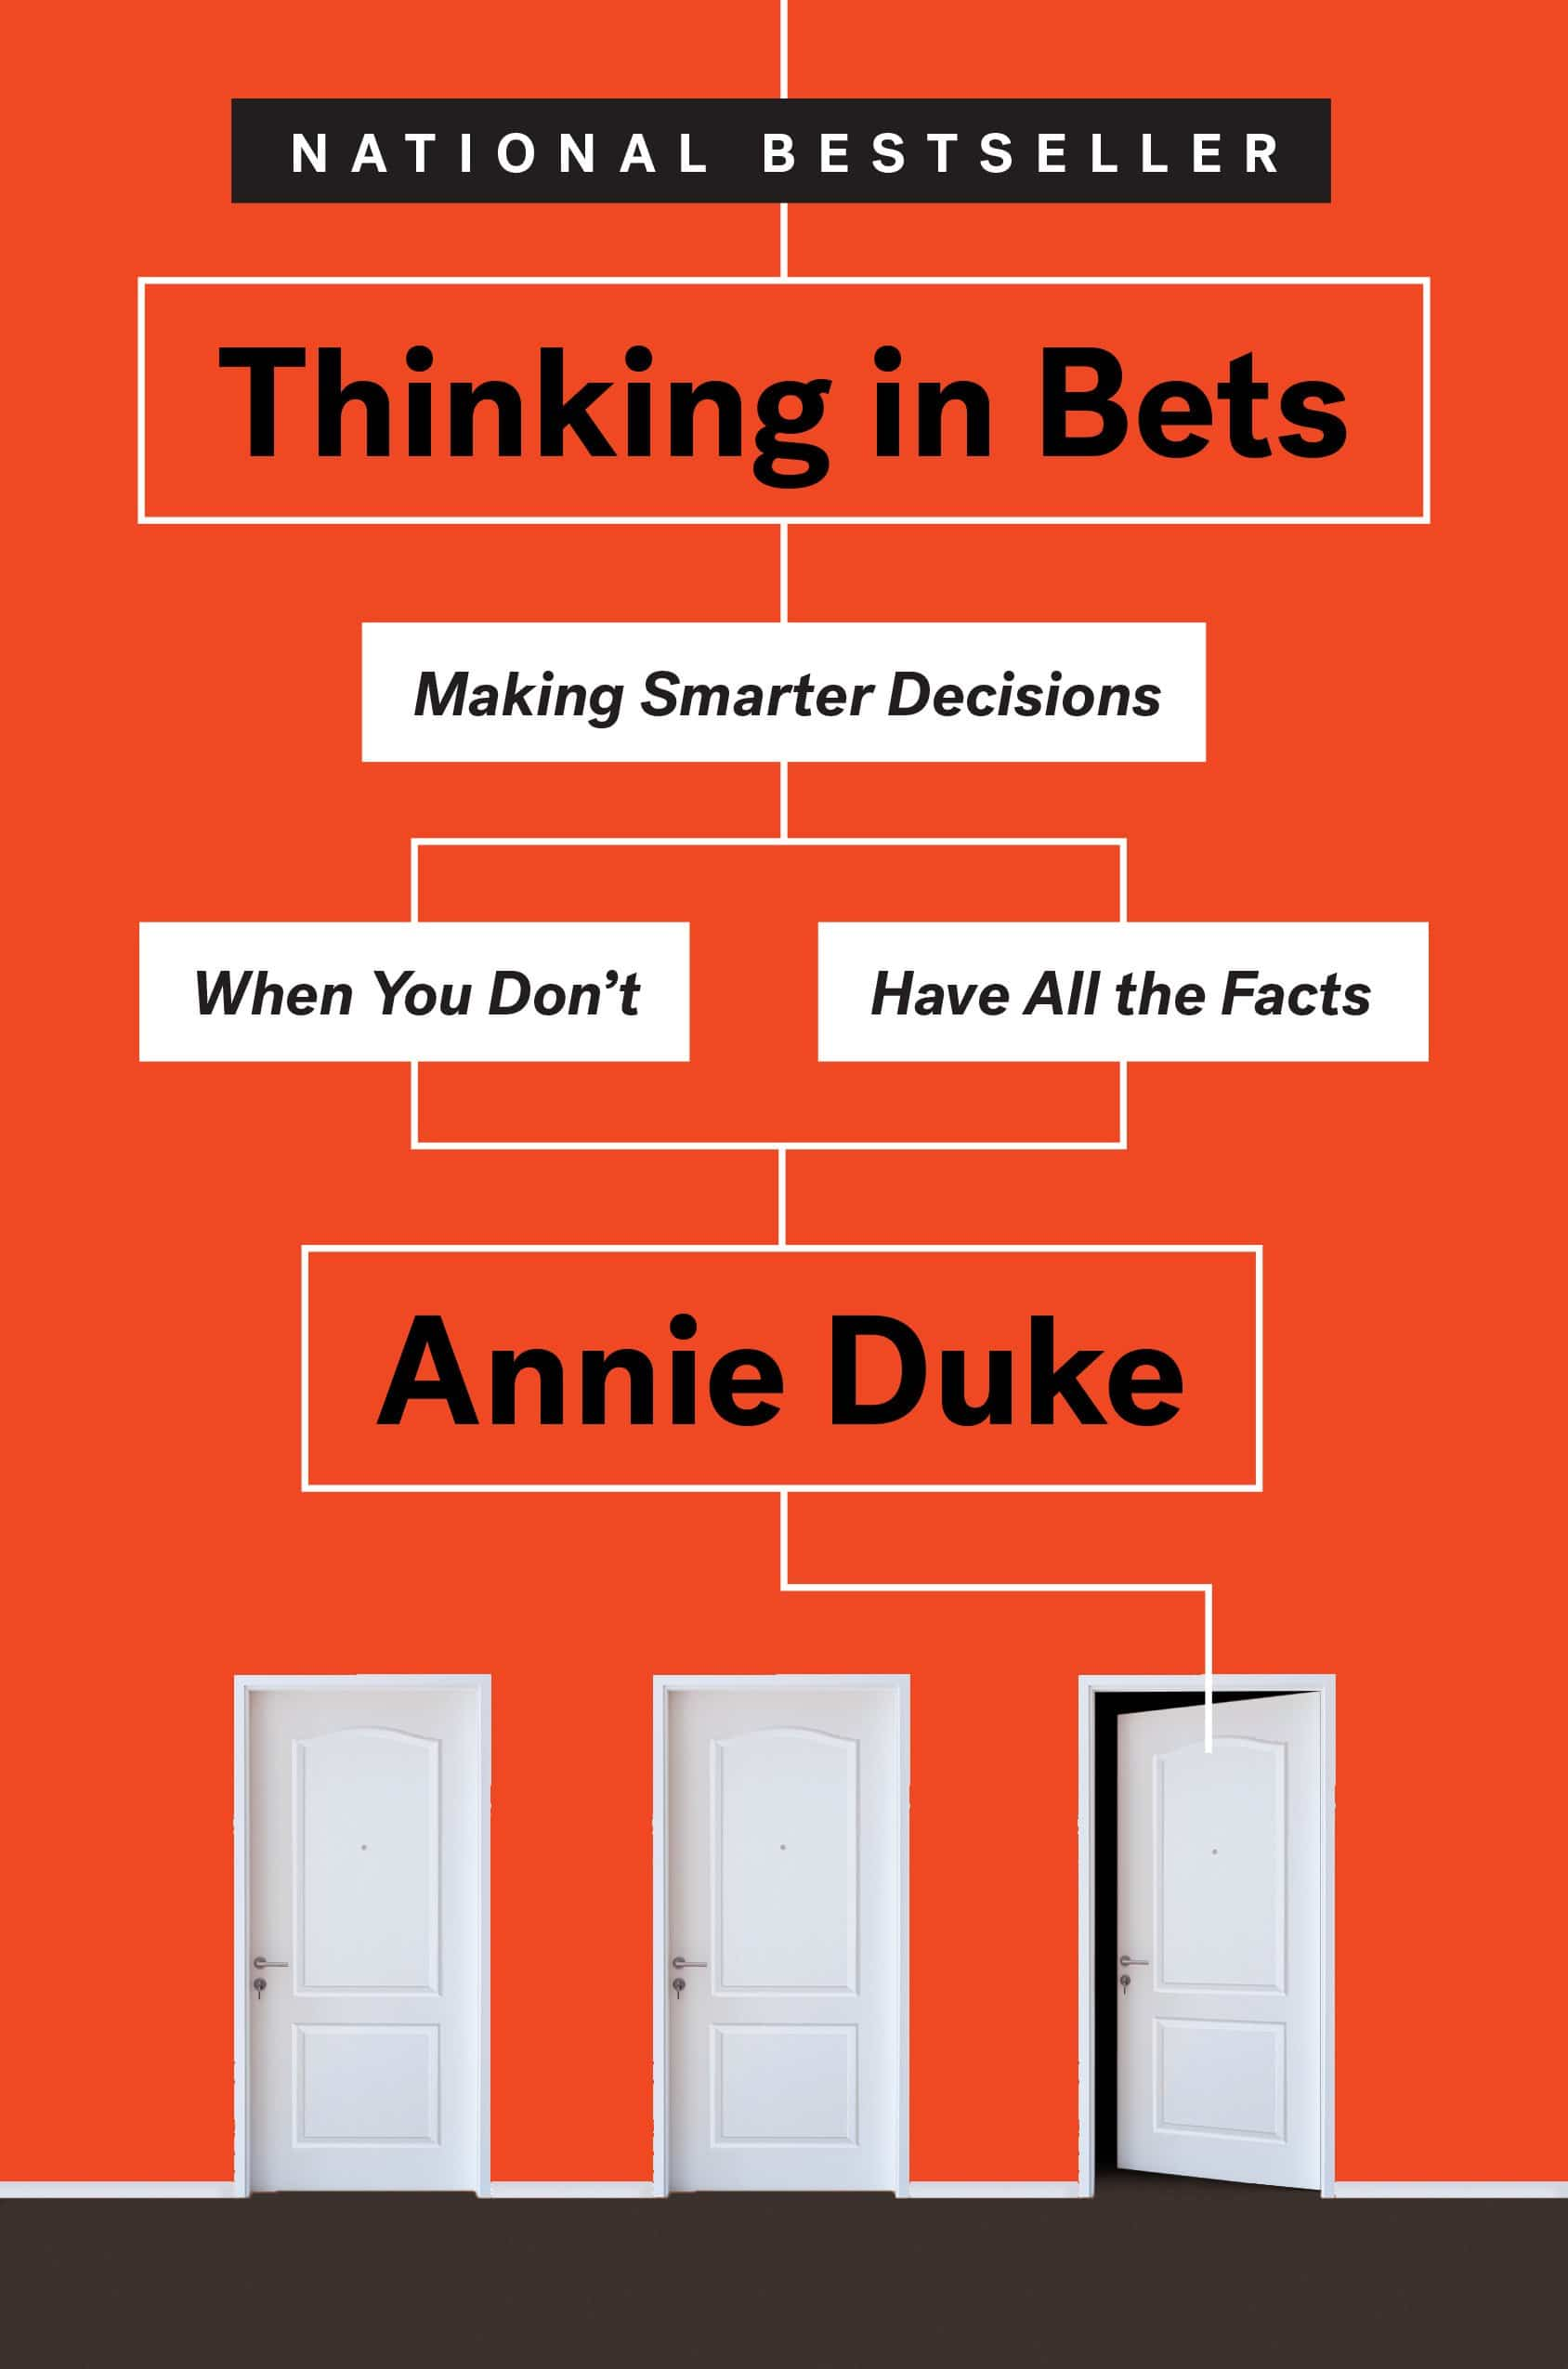 The cover of Thinking in Bets